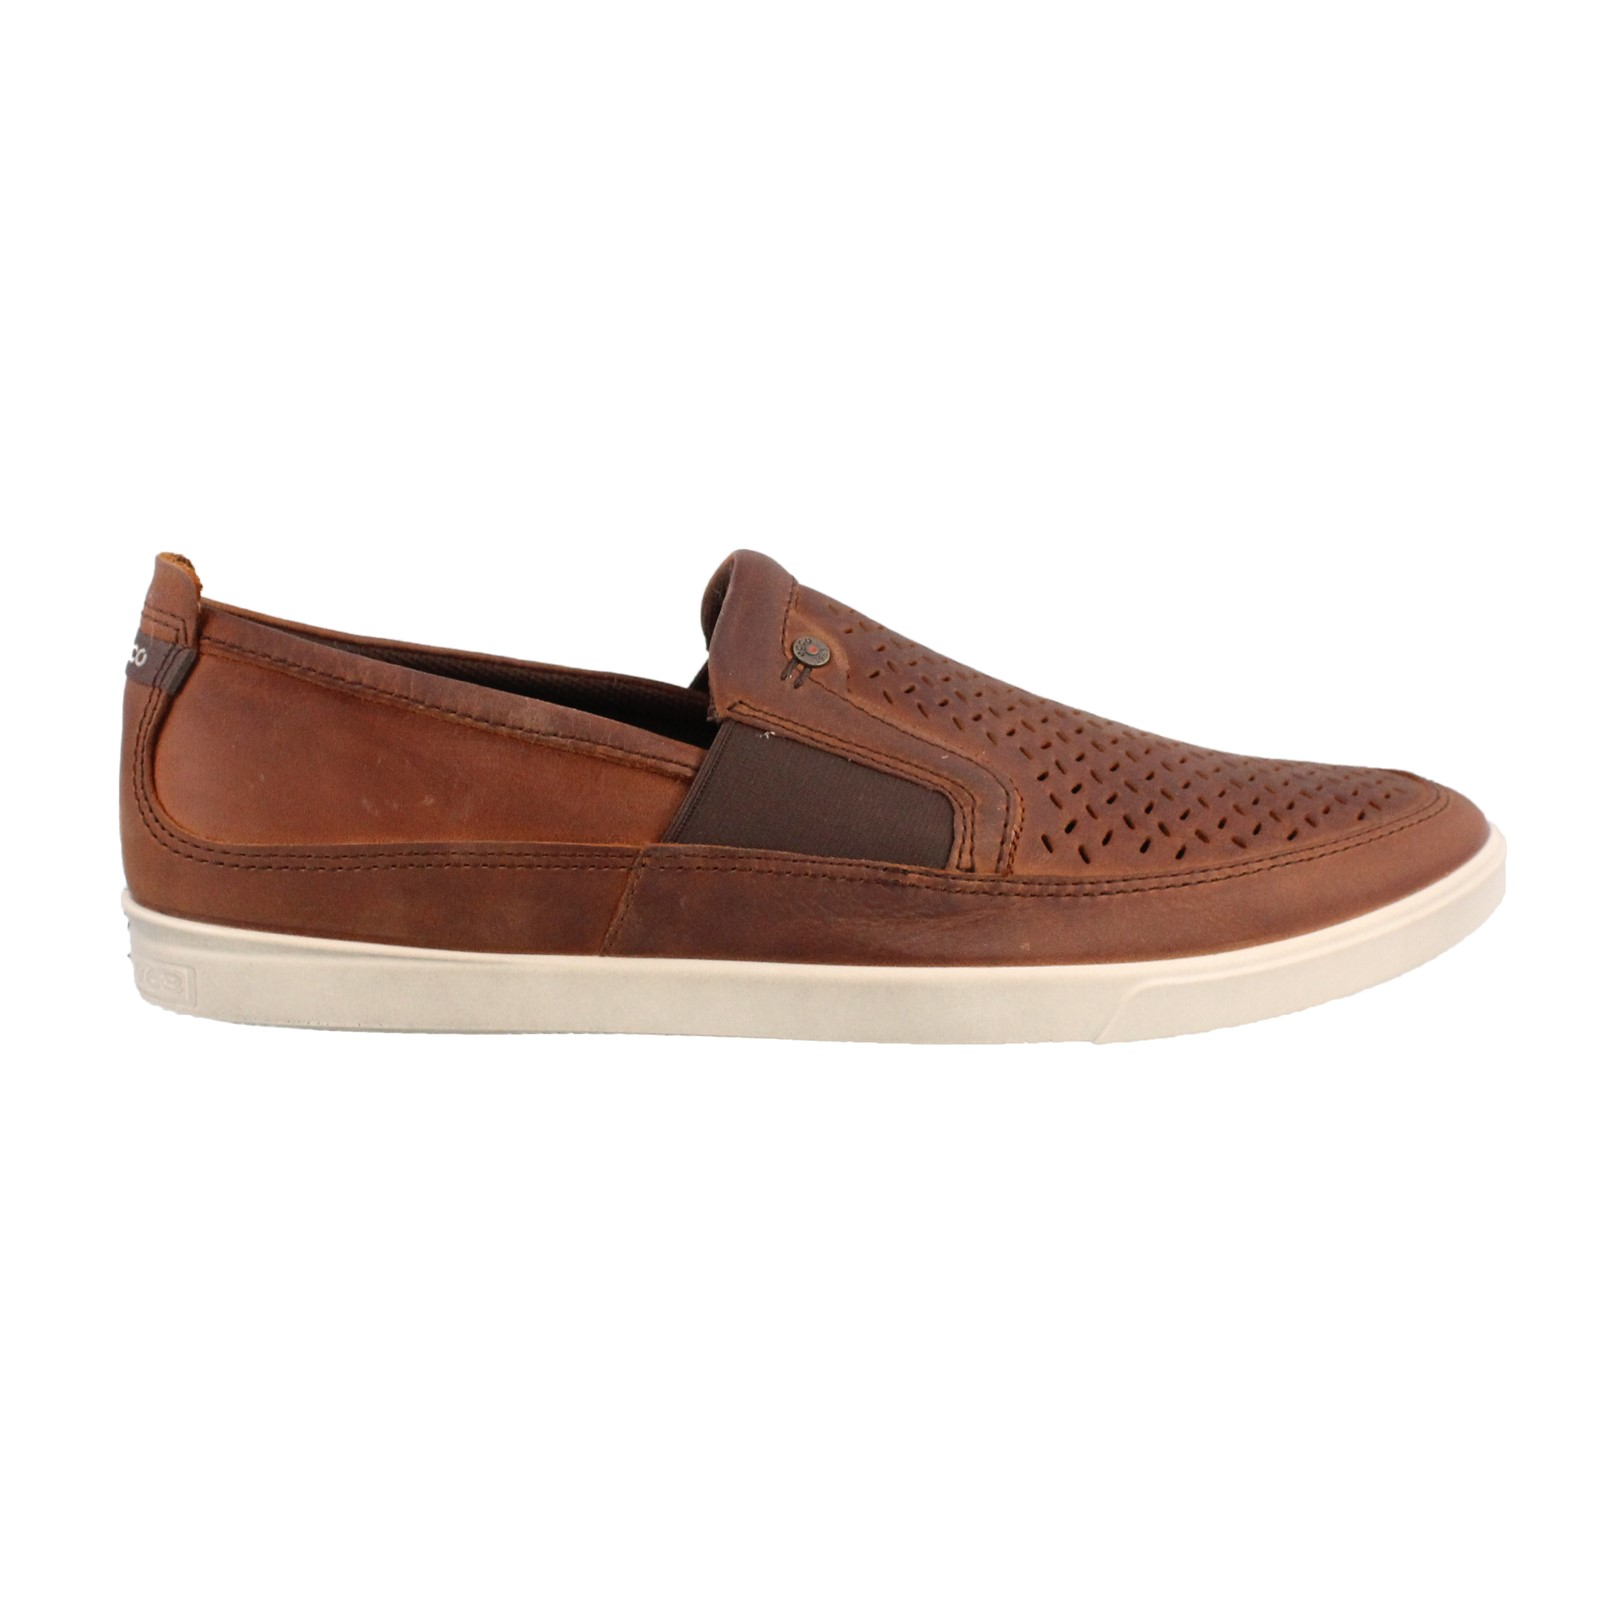 Men's Ecco, Collin casual Slip on Shoes